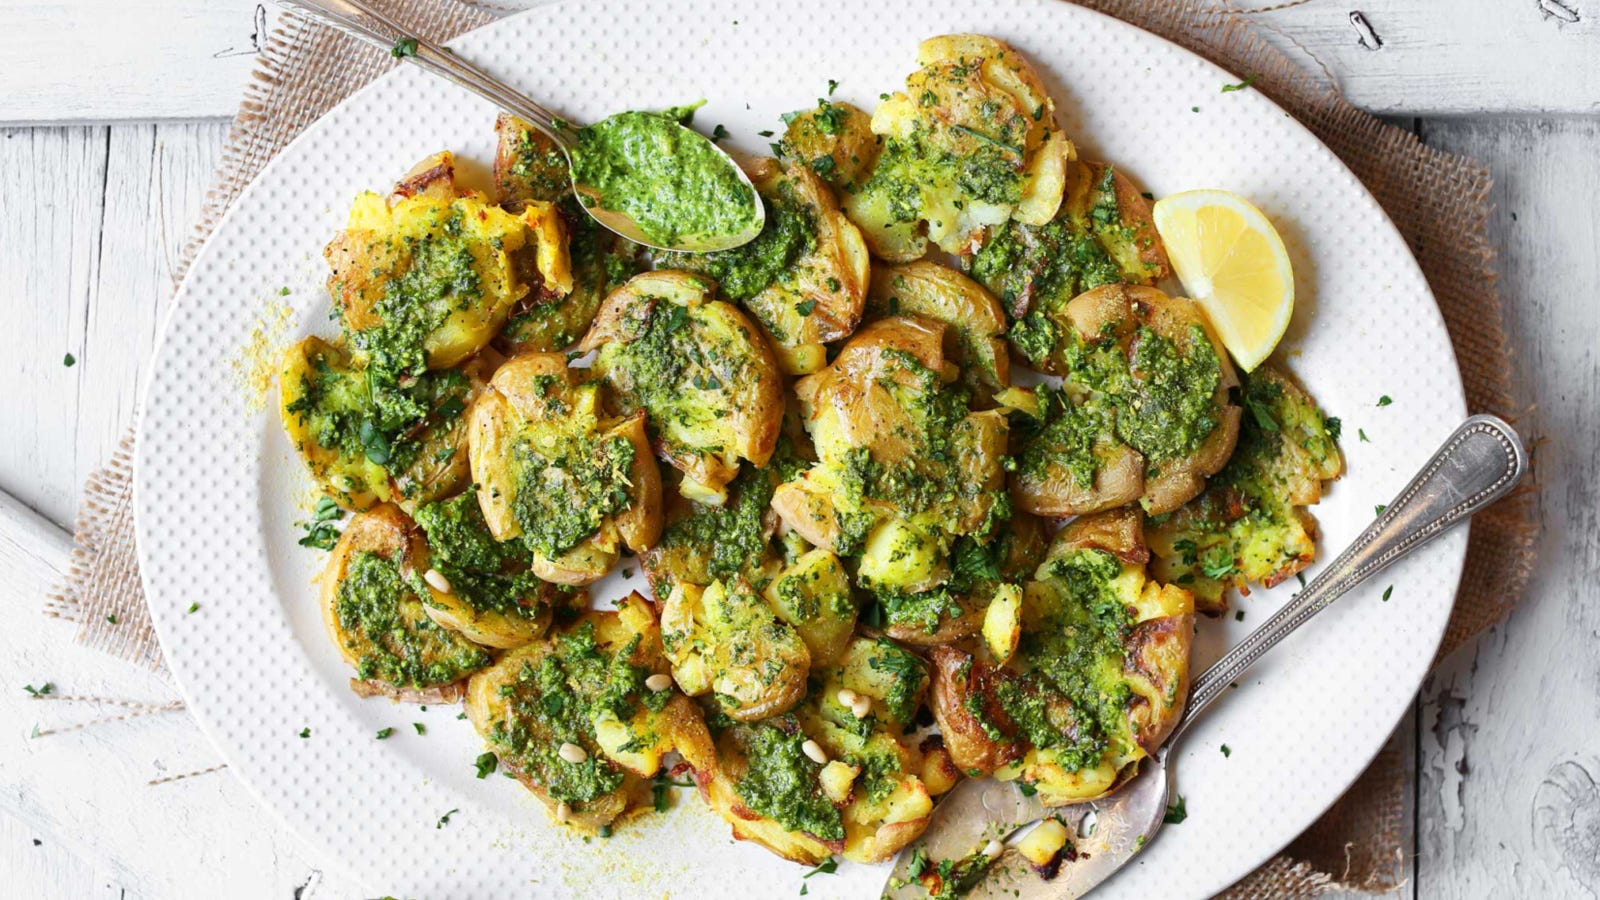 A large oval plate topped with roasted smashed potatoes, topped with pesto and pine nuts.